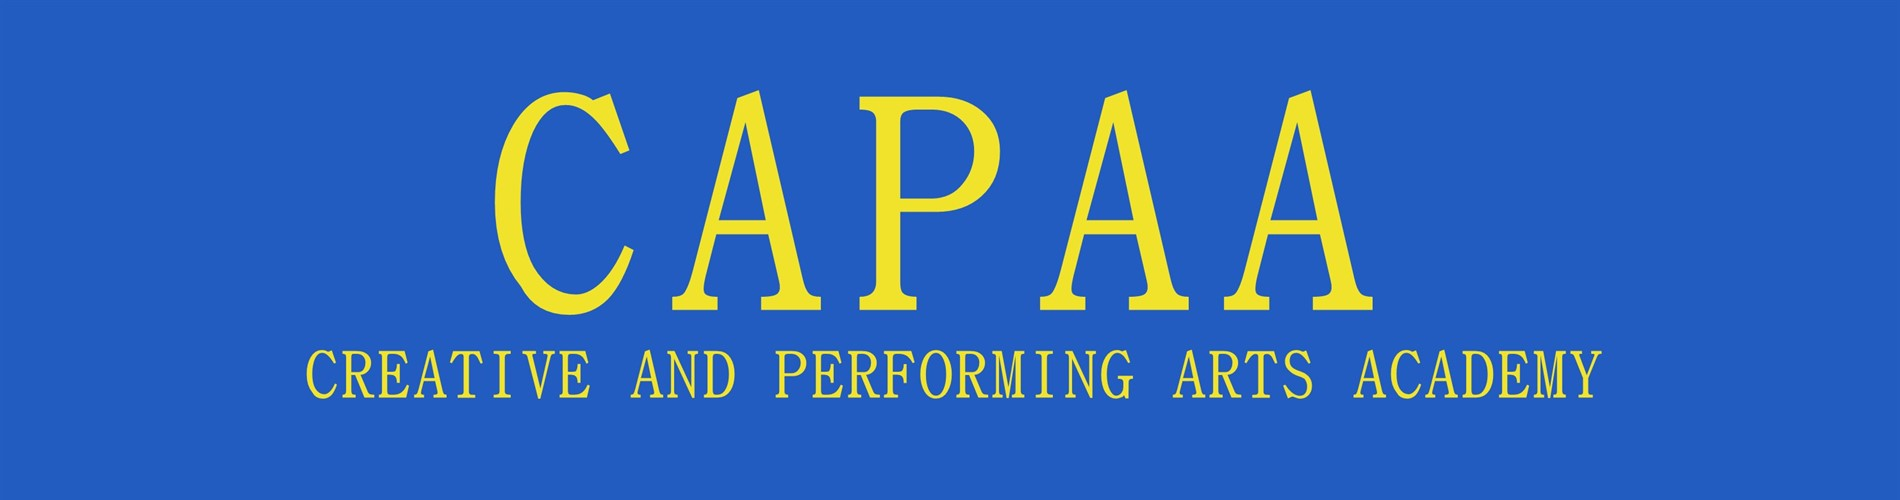 CAPAA Creative and Performing Arts Academy